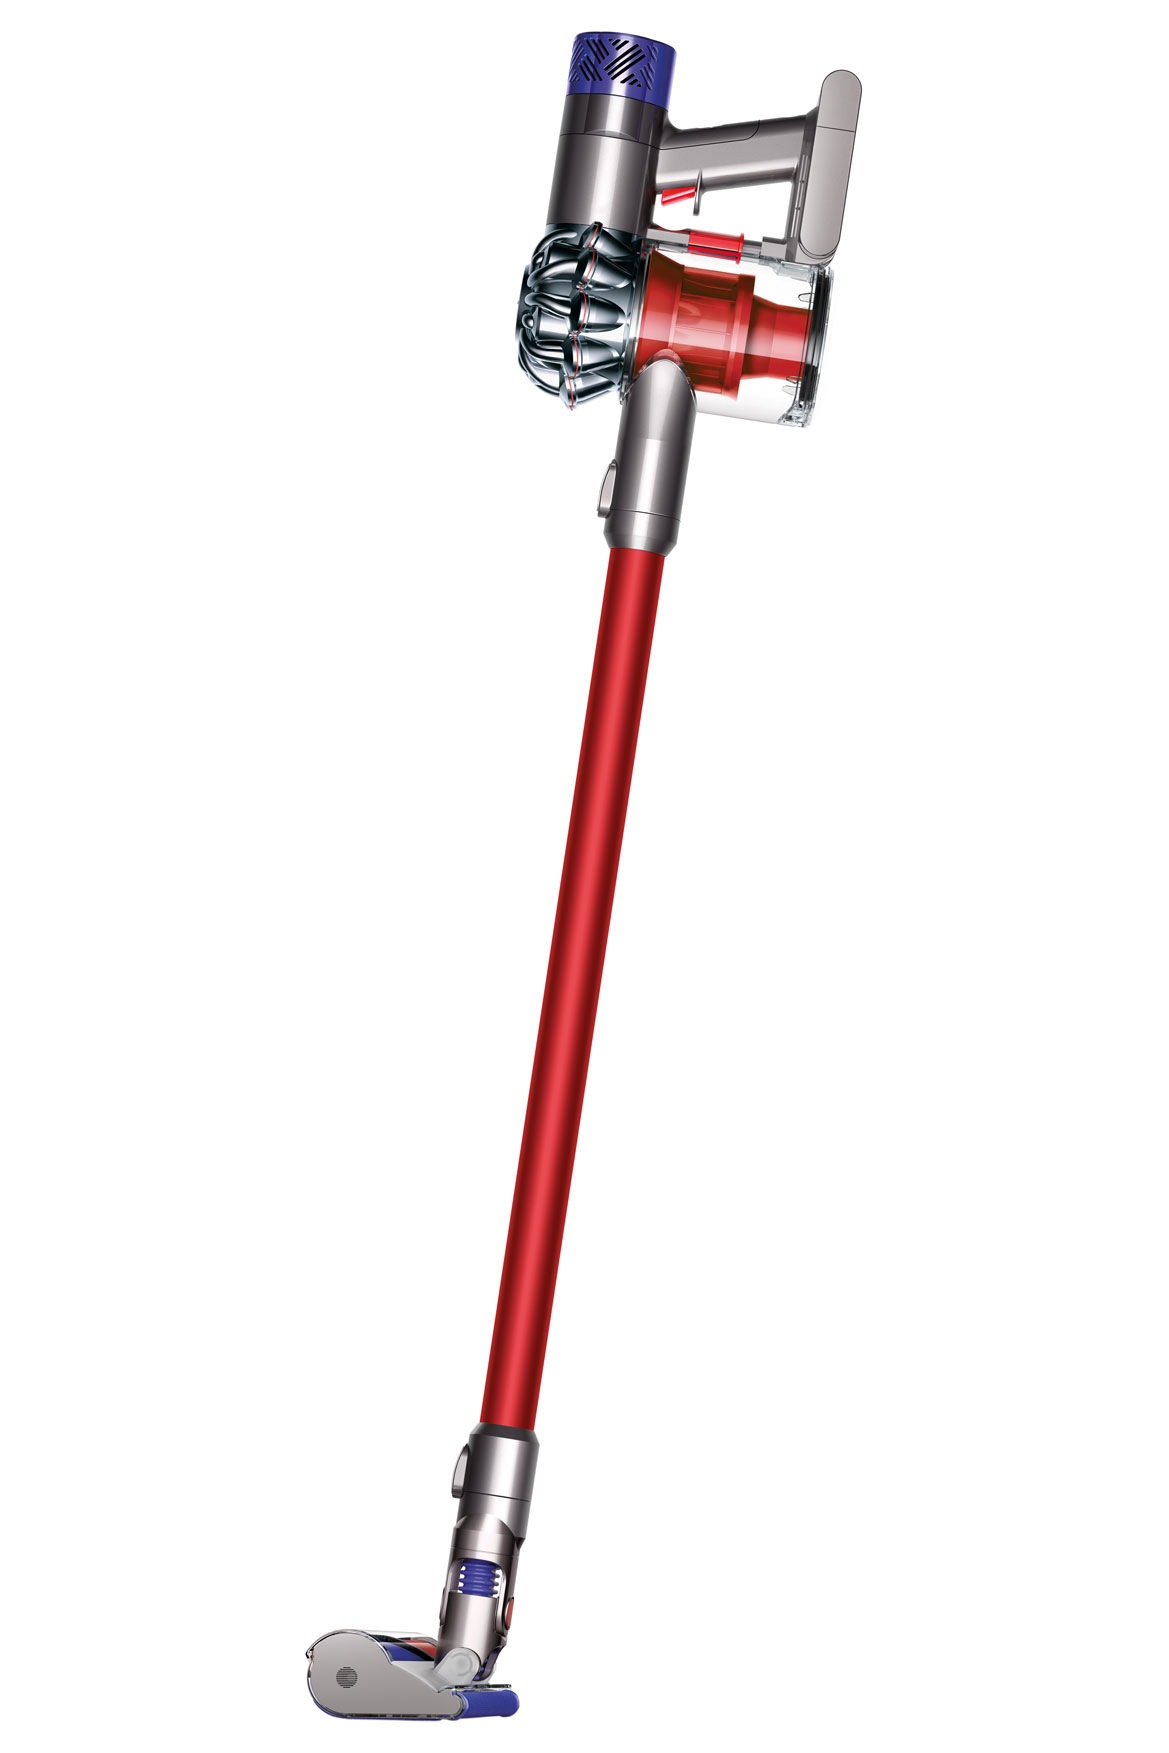 Dyson 209568 01 v6 absolute handstick vacuum cleaner for Dyson mattress tool vs mini motorized tool